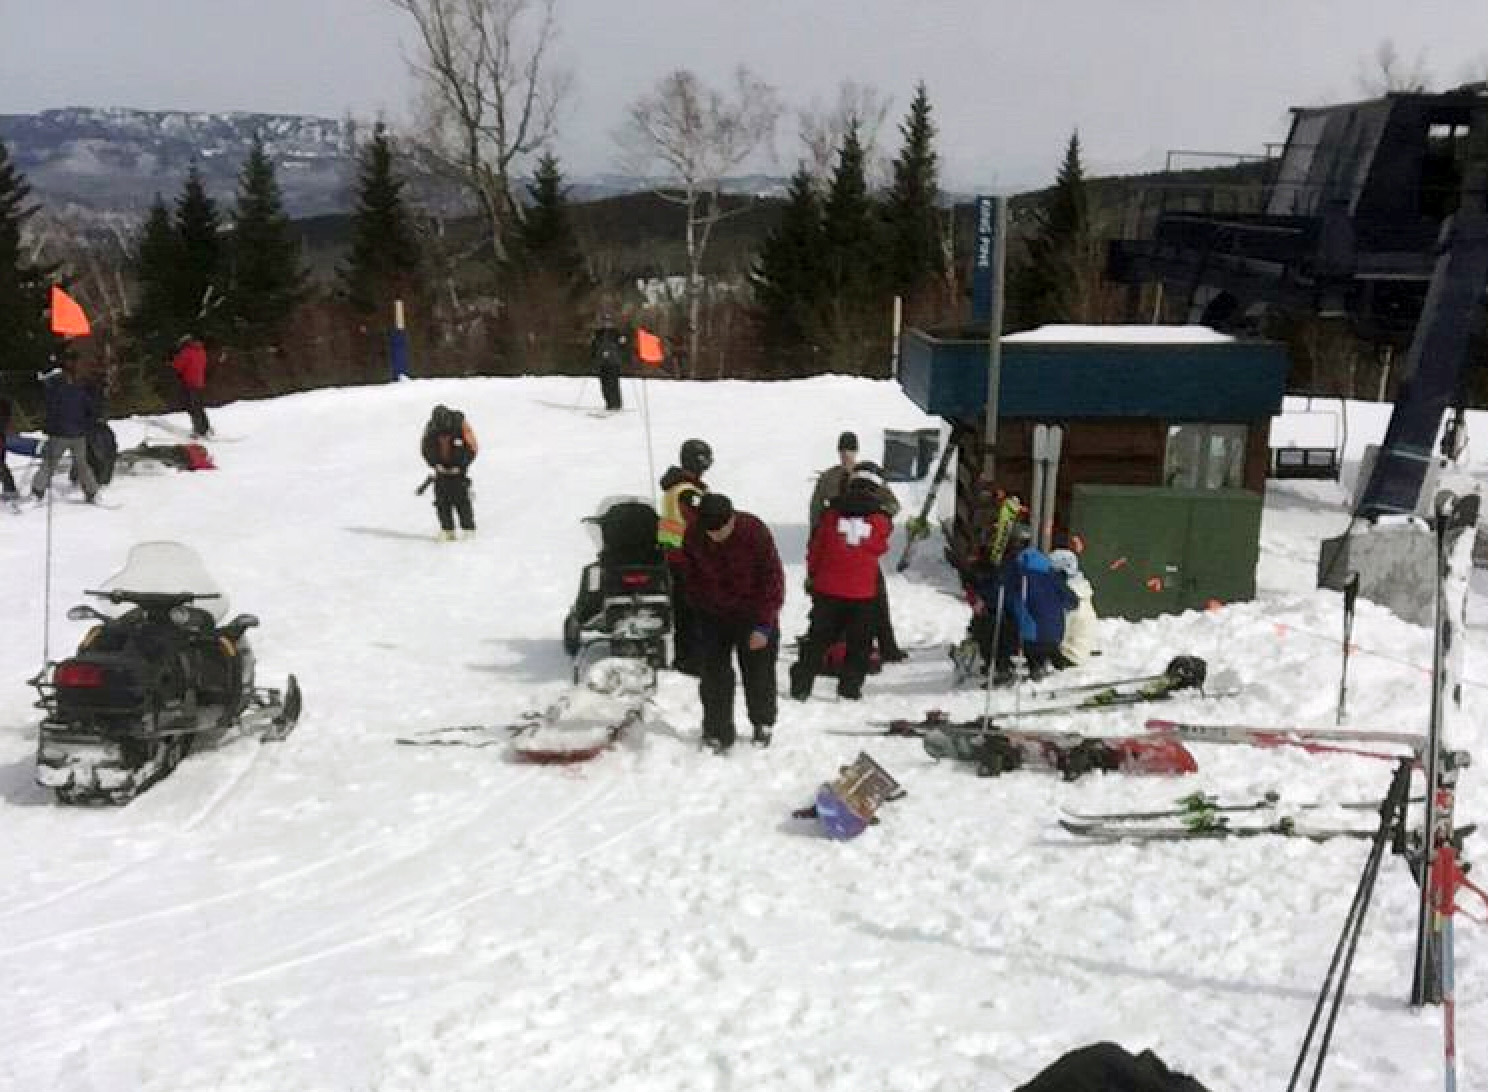 chair lift accident chippendale baby high final report on sugarloaf ski failure recommends